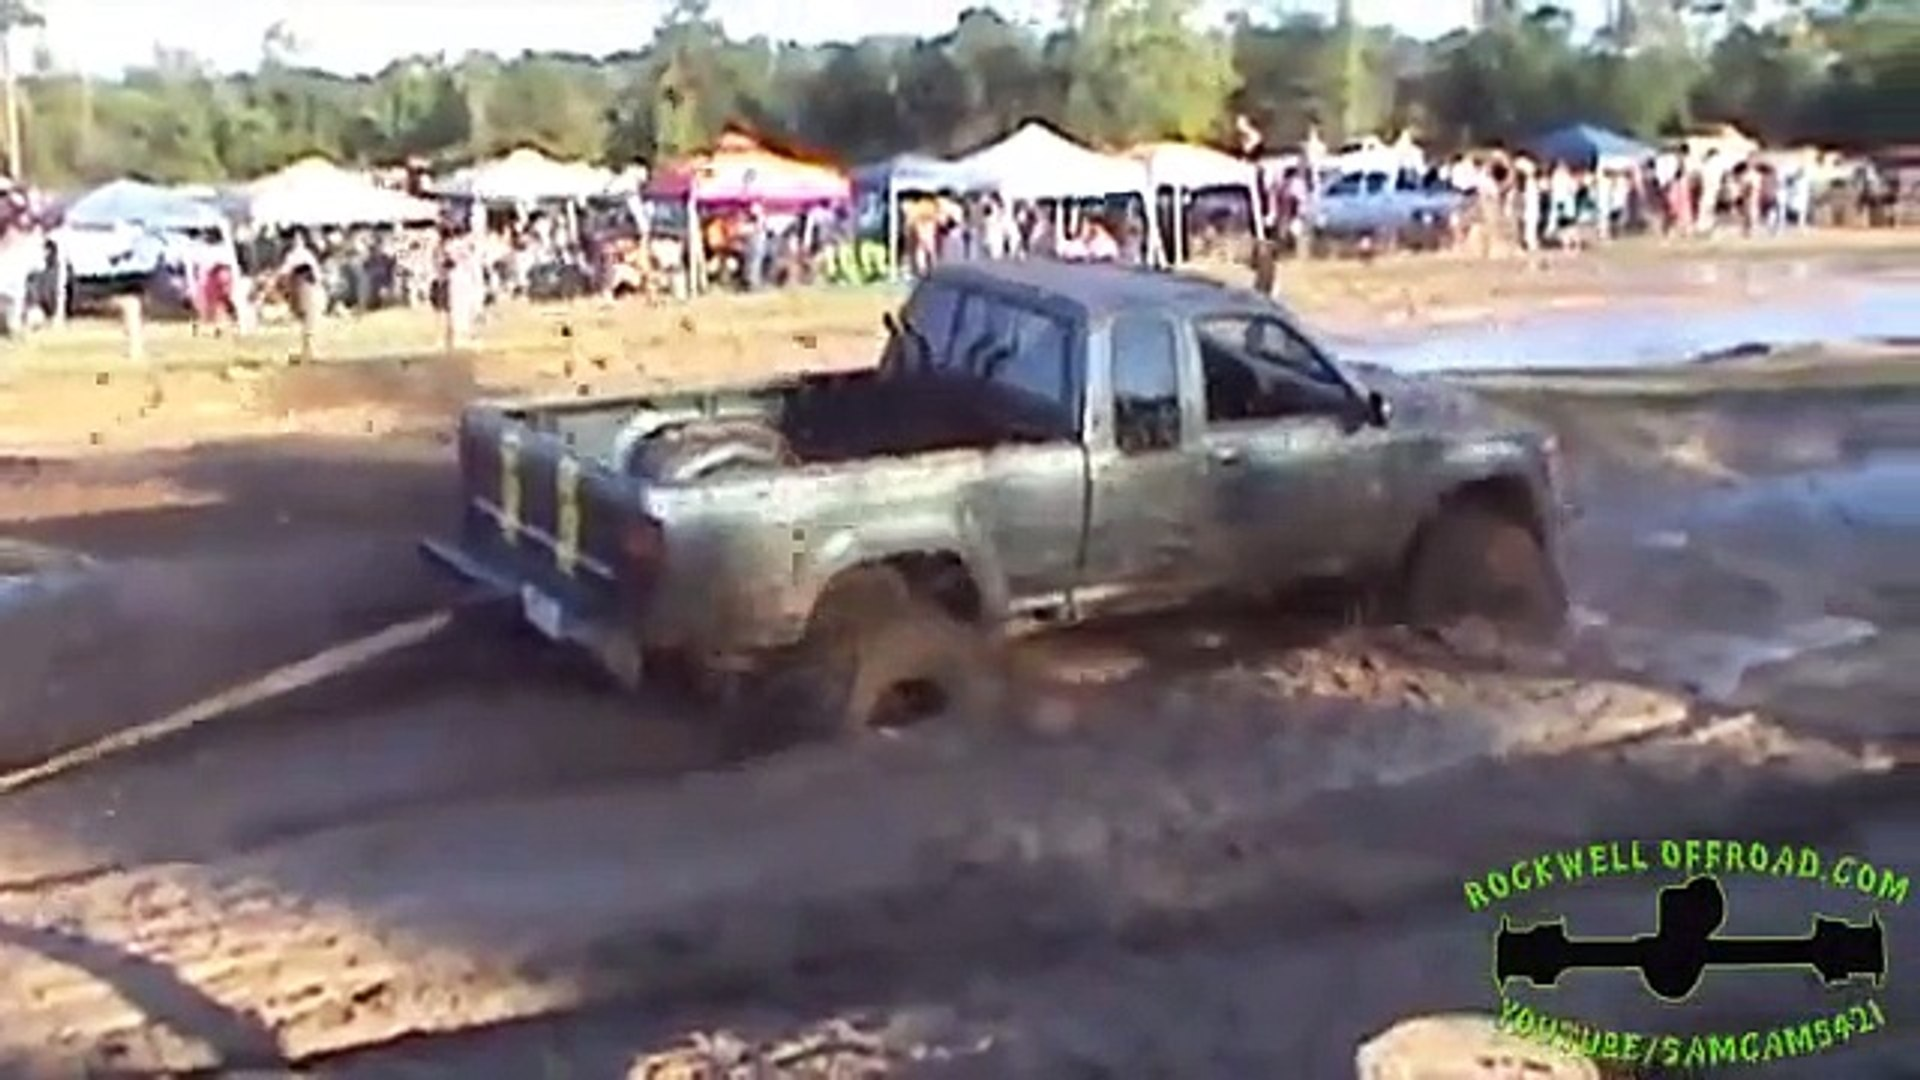 Monster Truck In Mud Videos Compilation Bigfoot Monster Truck In Mud Mud Festival Video Dailymotion